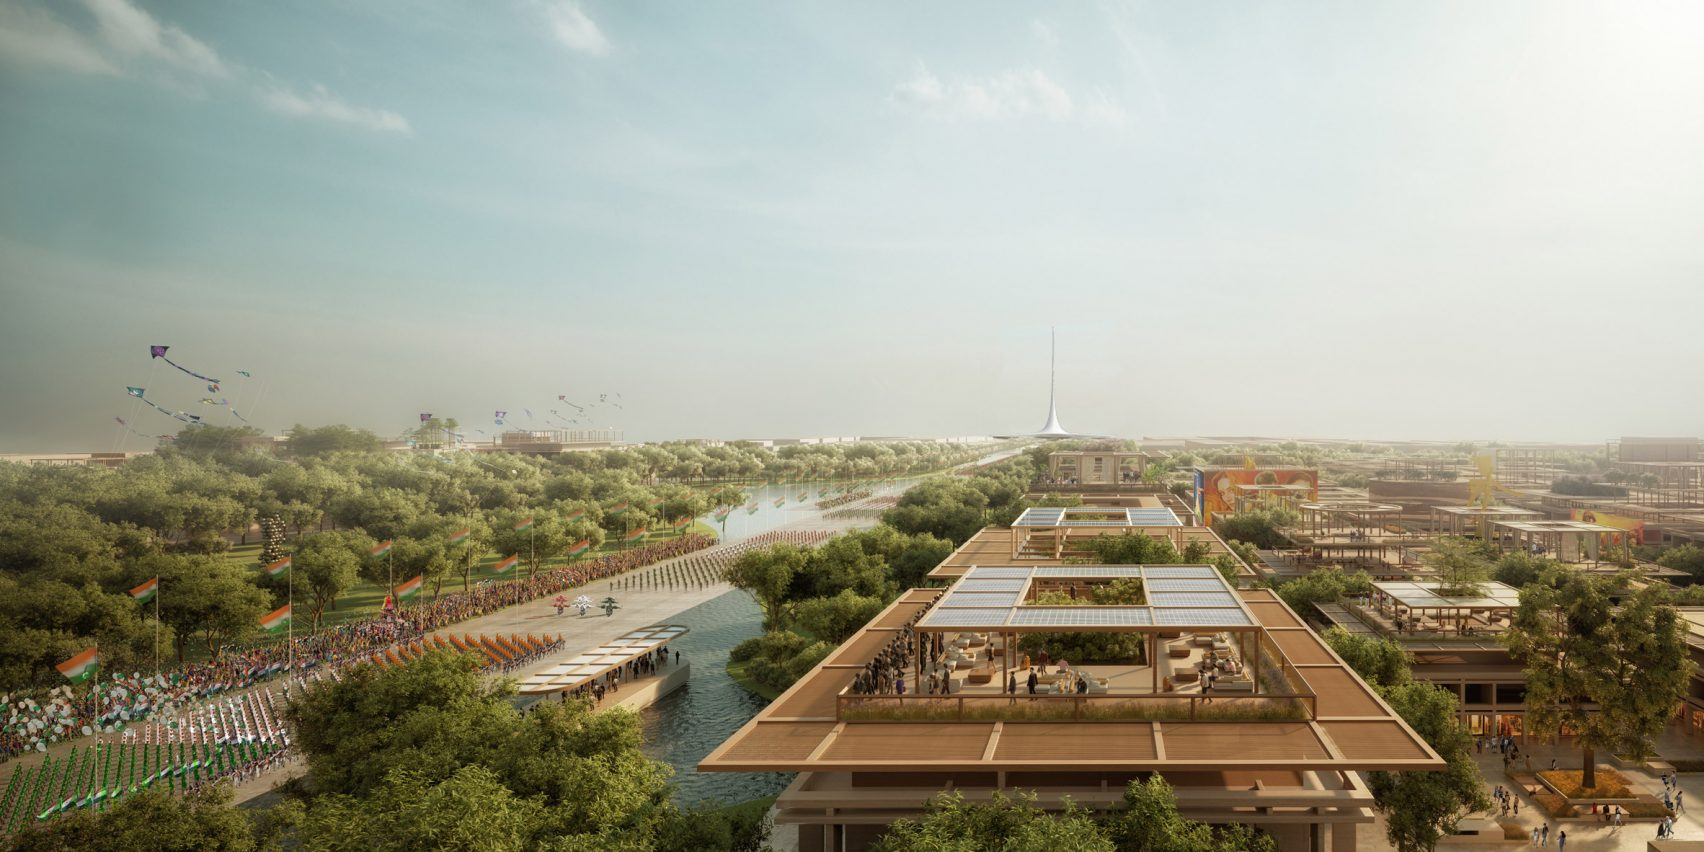 foster-partners-india-masterplan-sustainable-city_dezeen_2364_col_9-1704x852